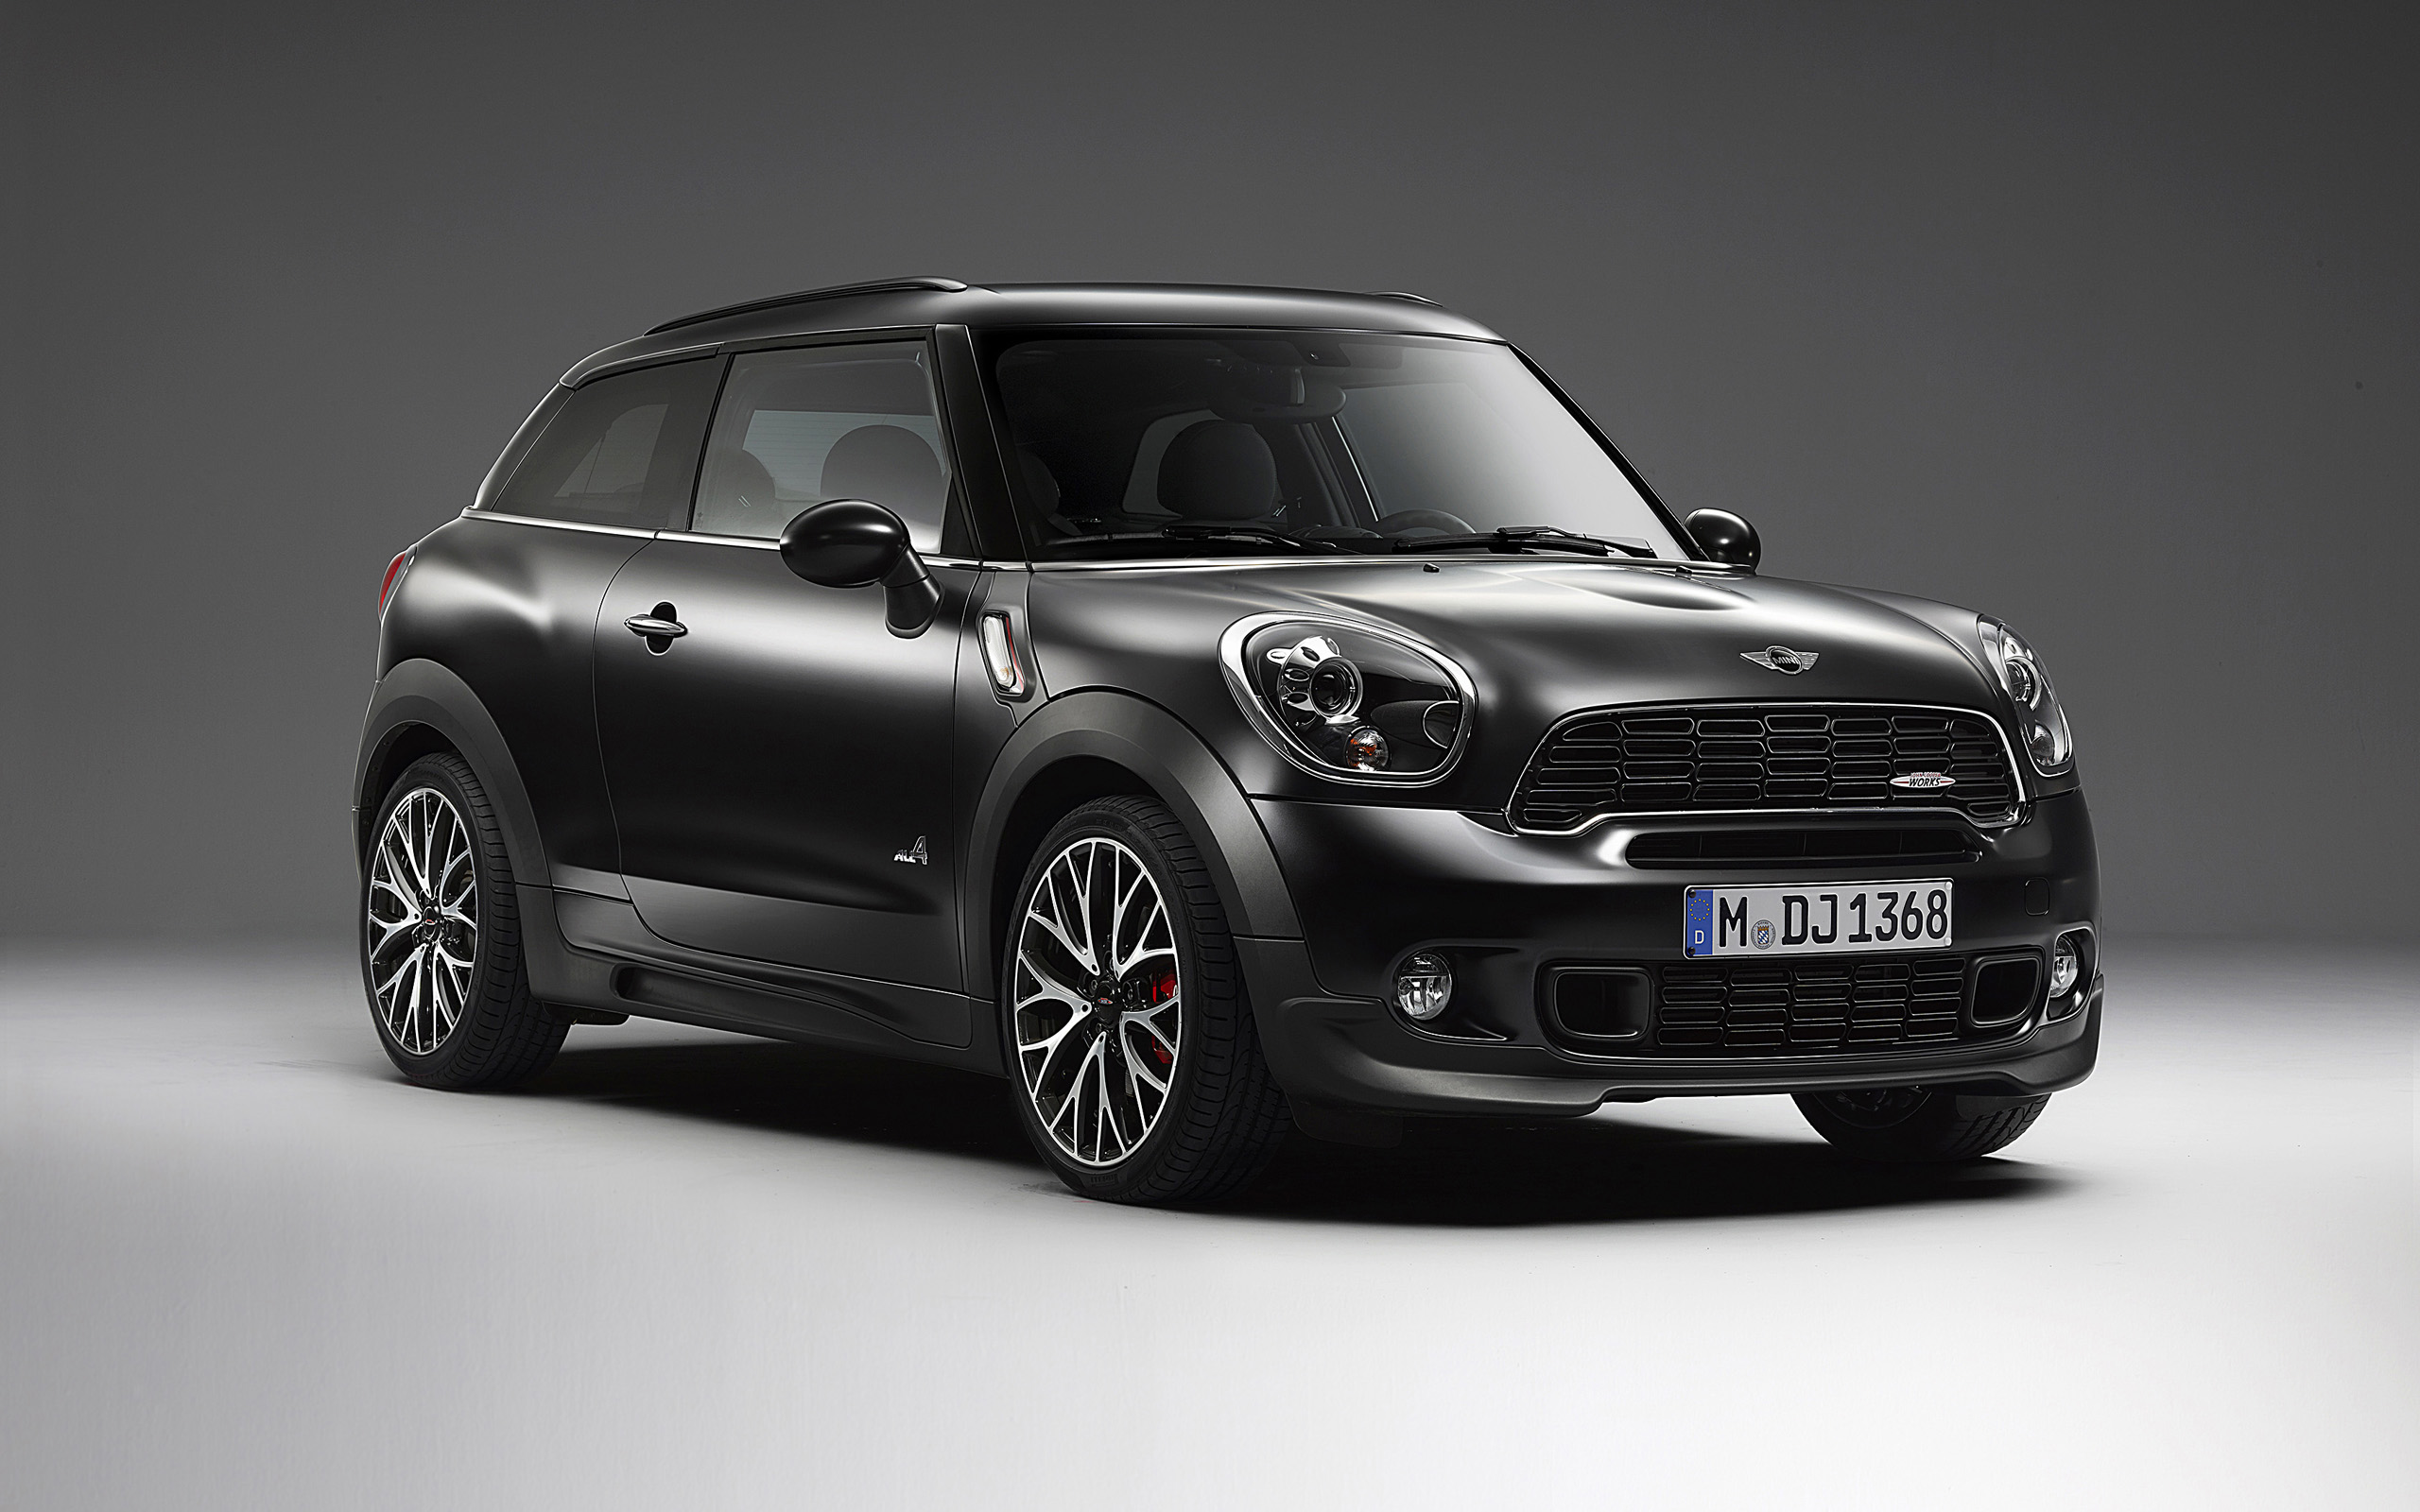 2014 mini john cooper works paceman wallpaper hd car wallpapers id 3859. Black Bedroom Furniture Sets. Home Design Ideas